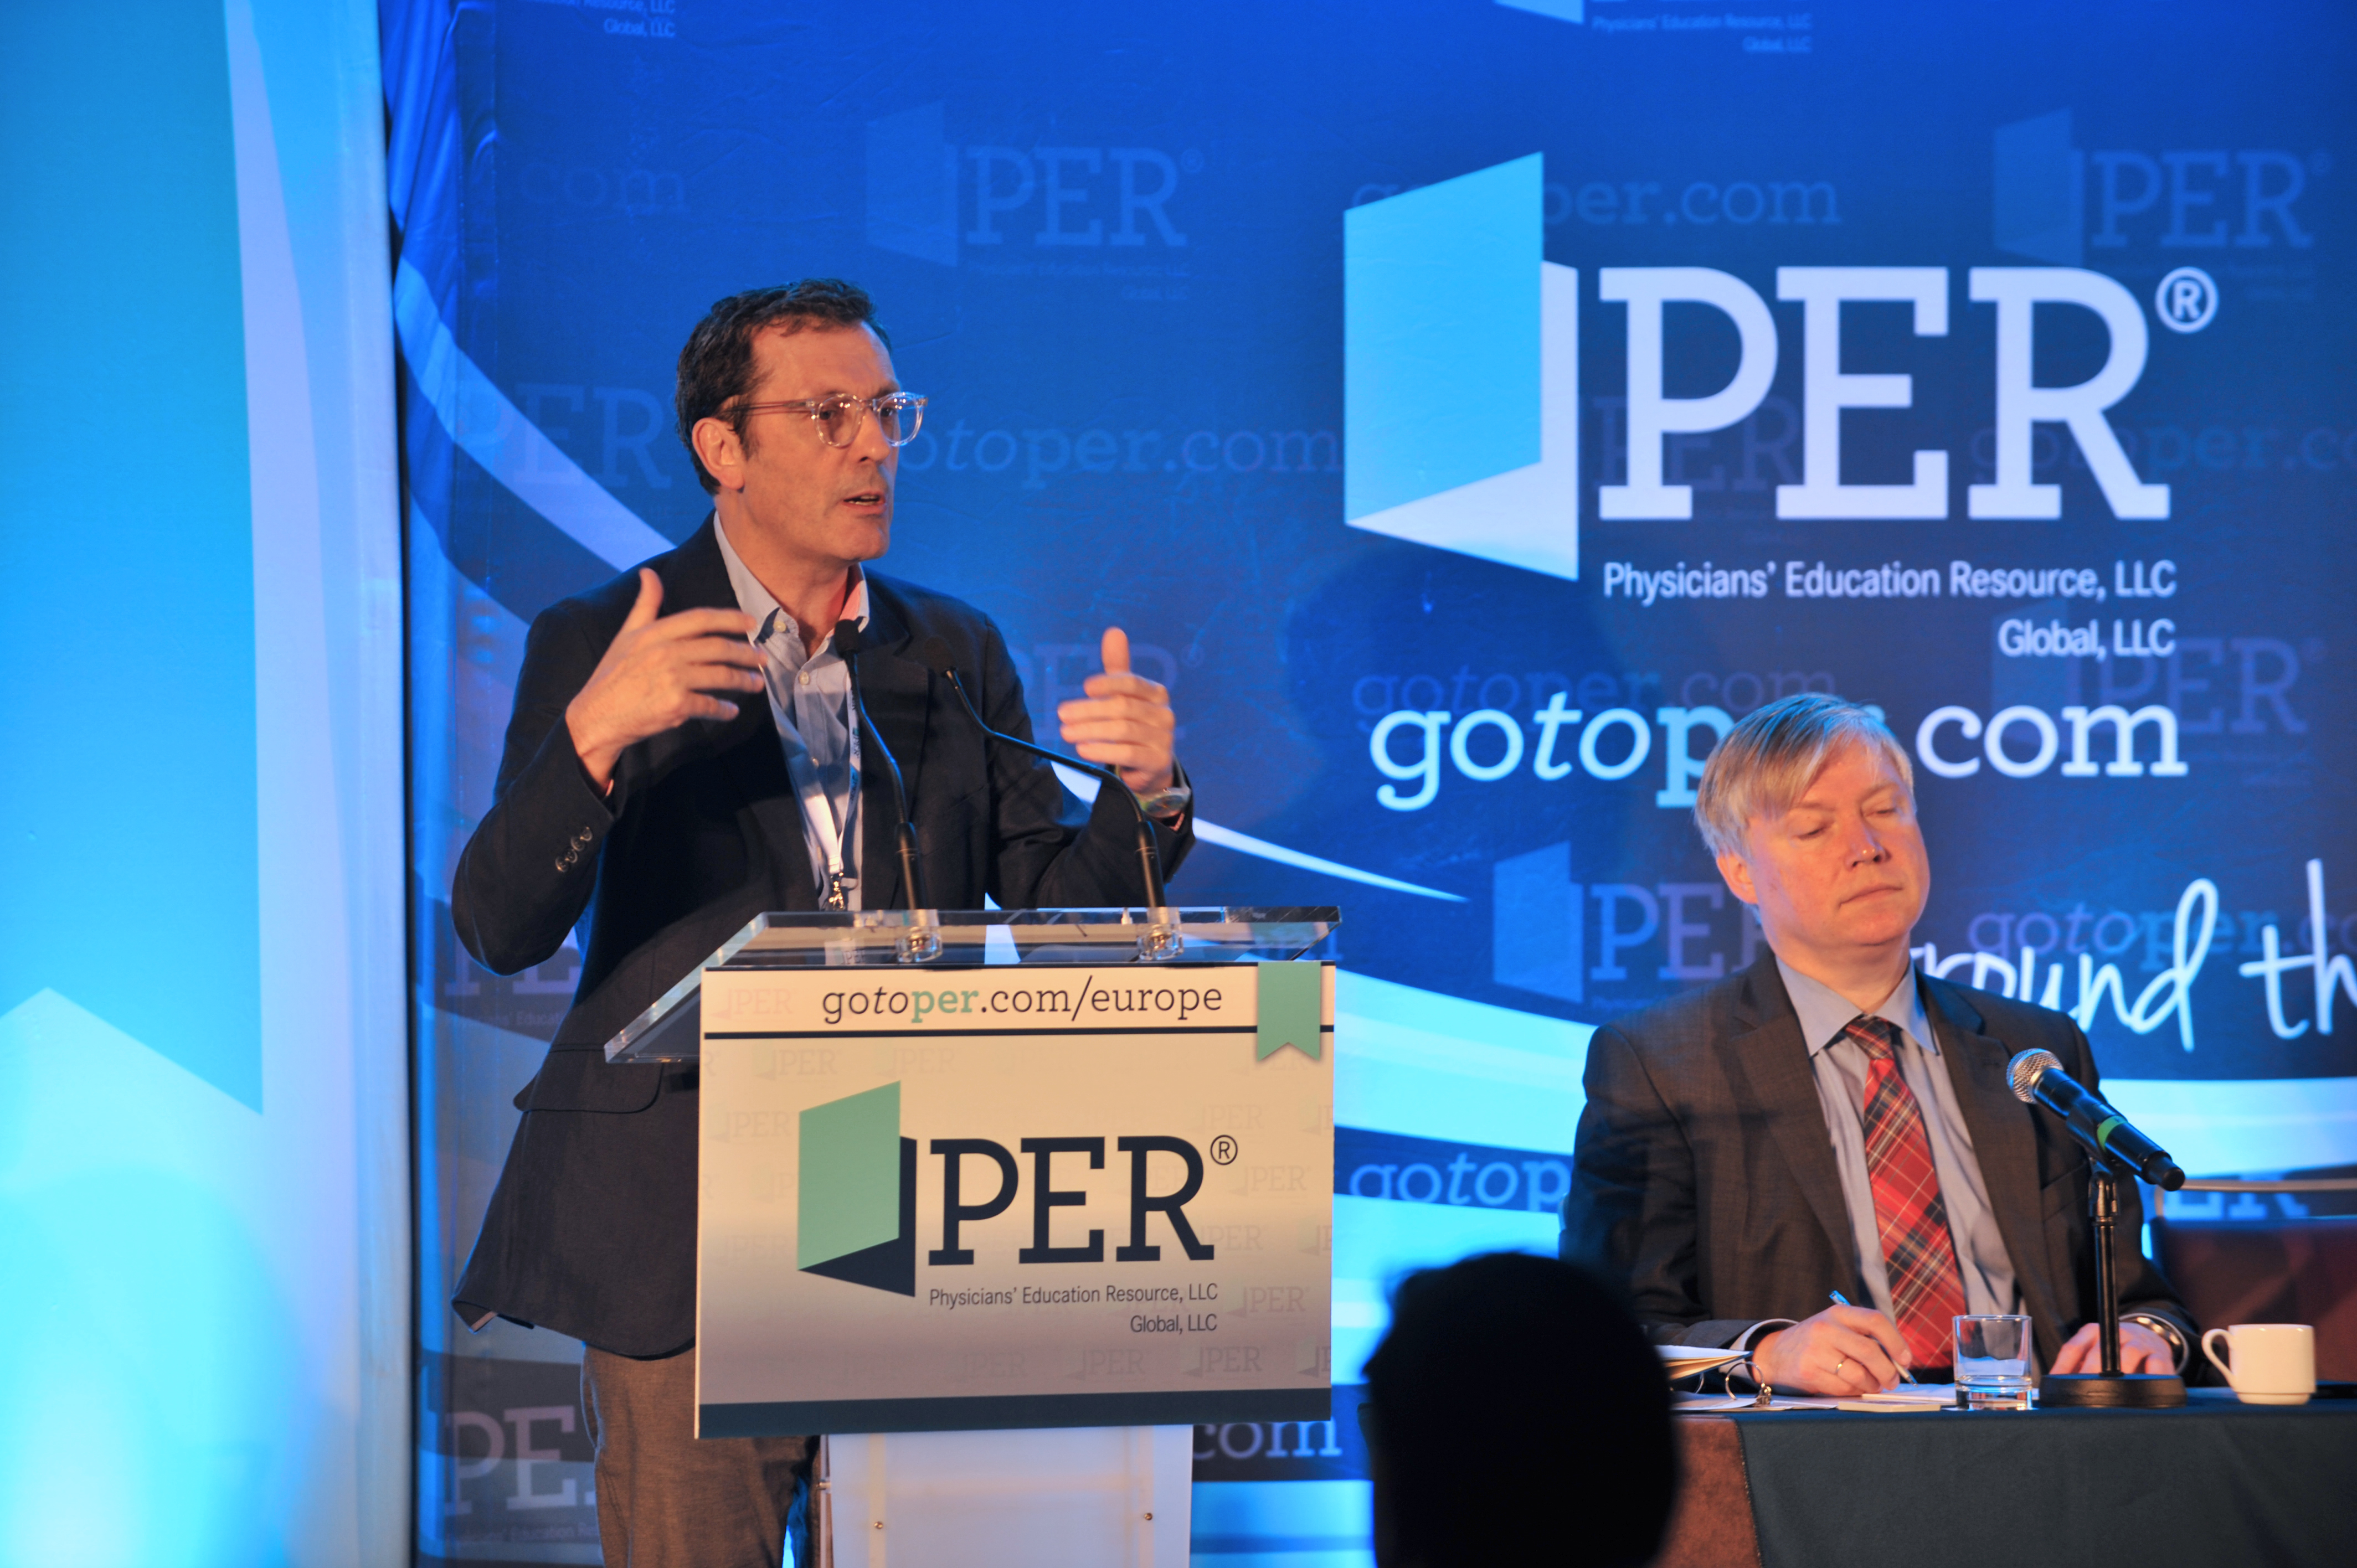 Luis Paz-Ares, MD, PhD; Prof. Dr. med. Martin Reck